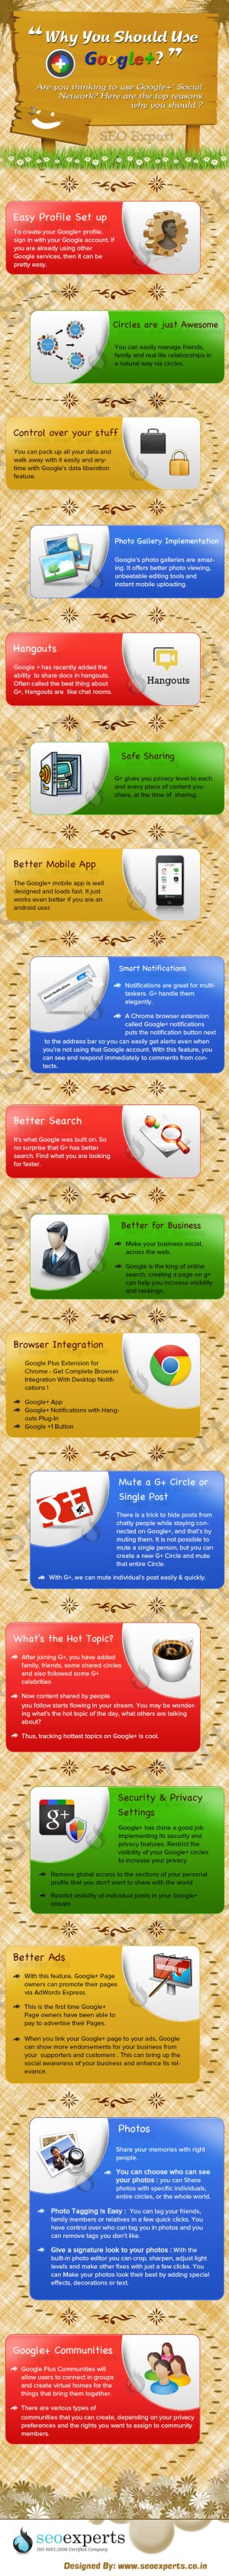 Top Reasons to Use Google+ Social Network